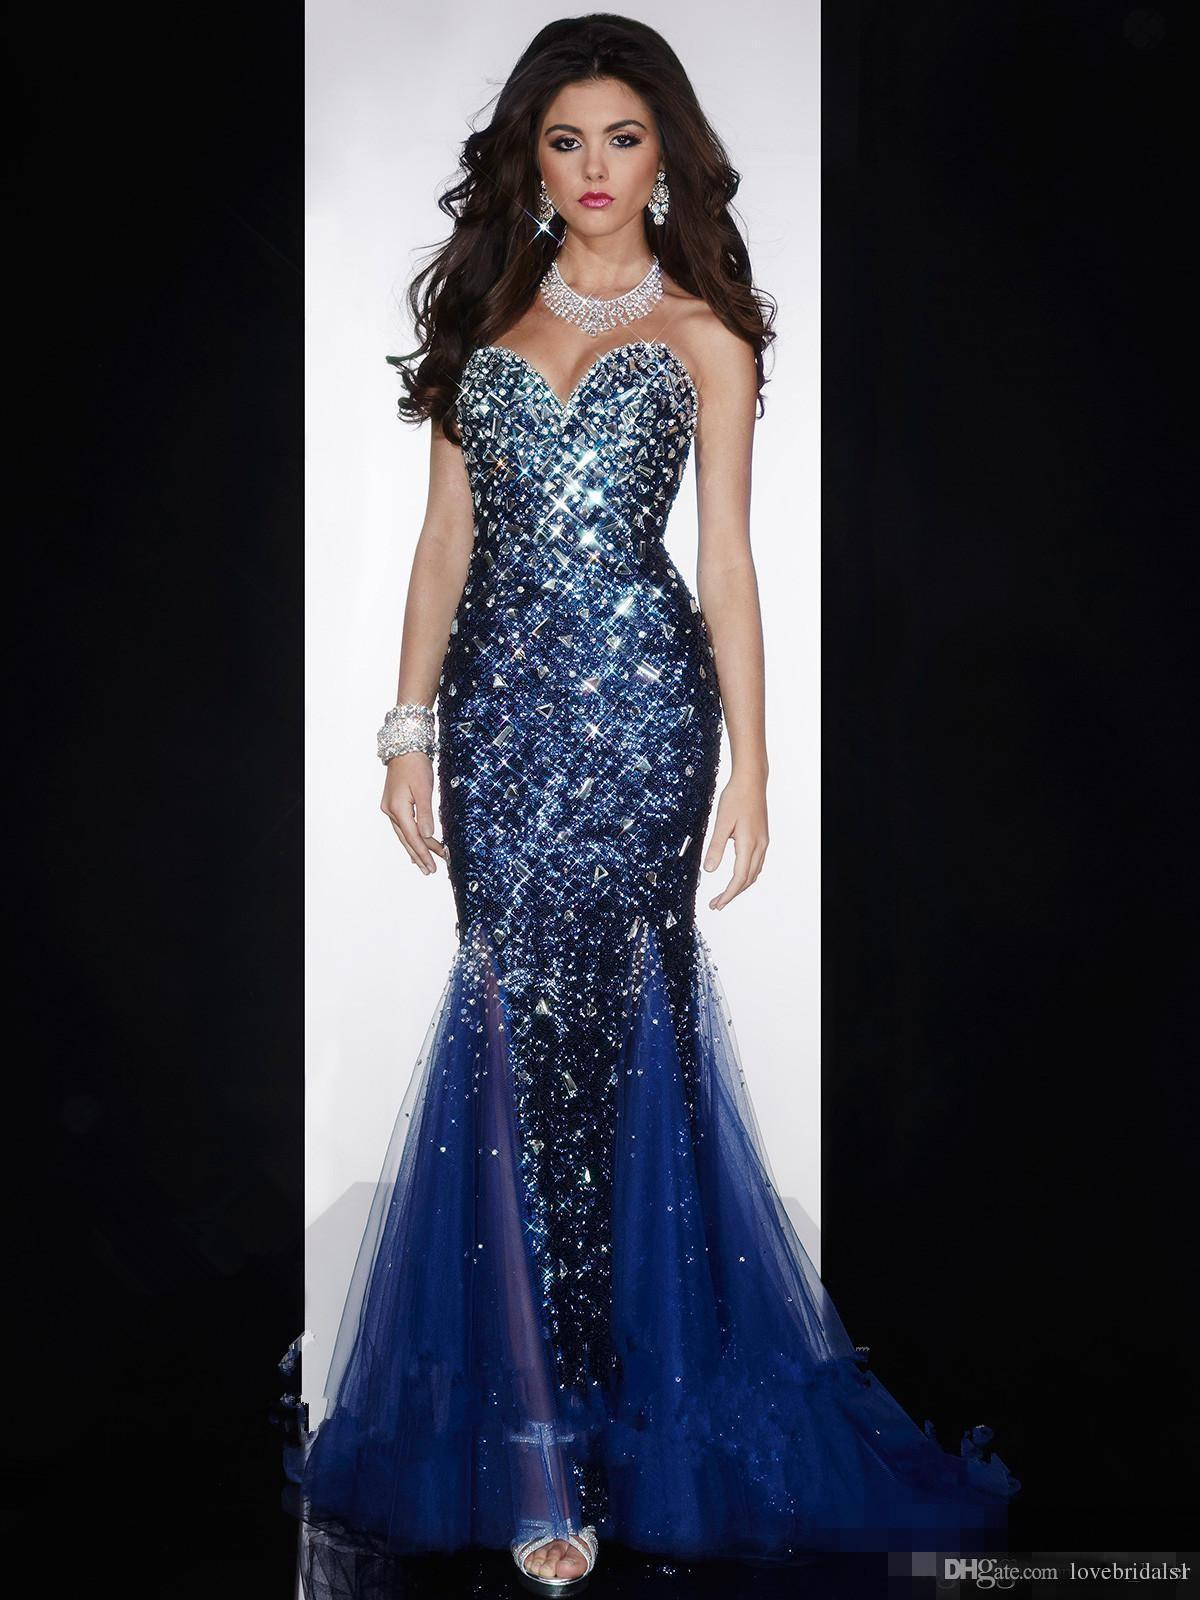 Gorgeous Crystal beaded Mermaid Sweetheart Long Prom Dresses Open Back Sequined Diamond Royal Blue Formal Evening Dresses